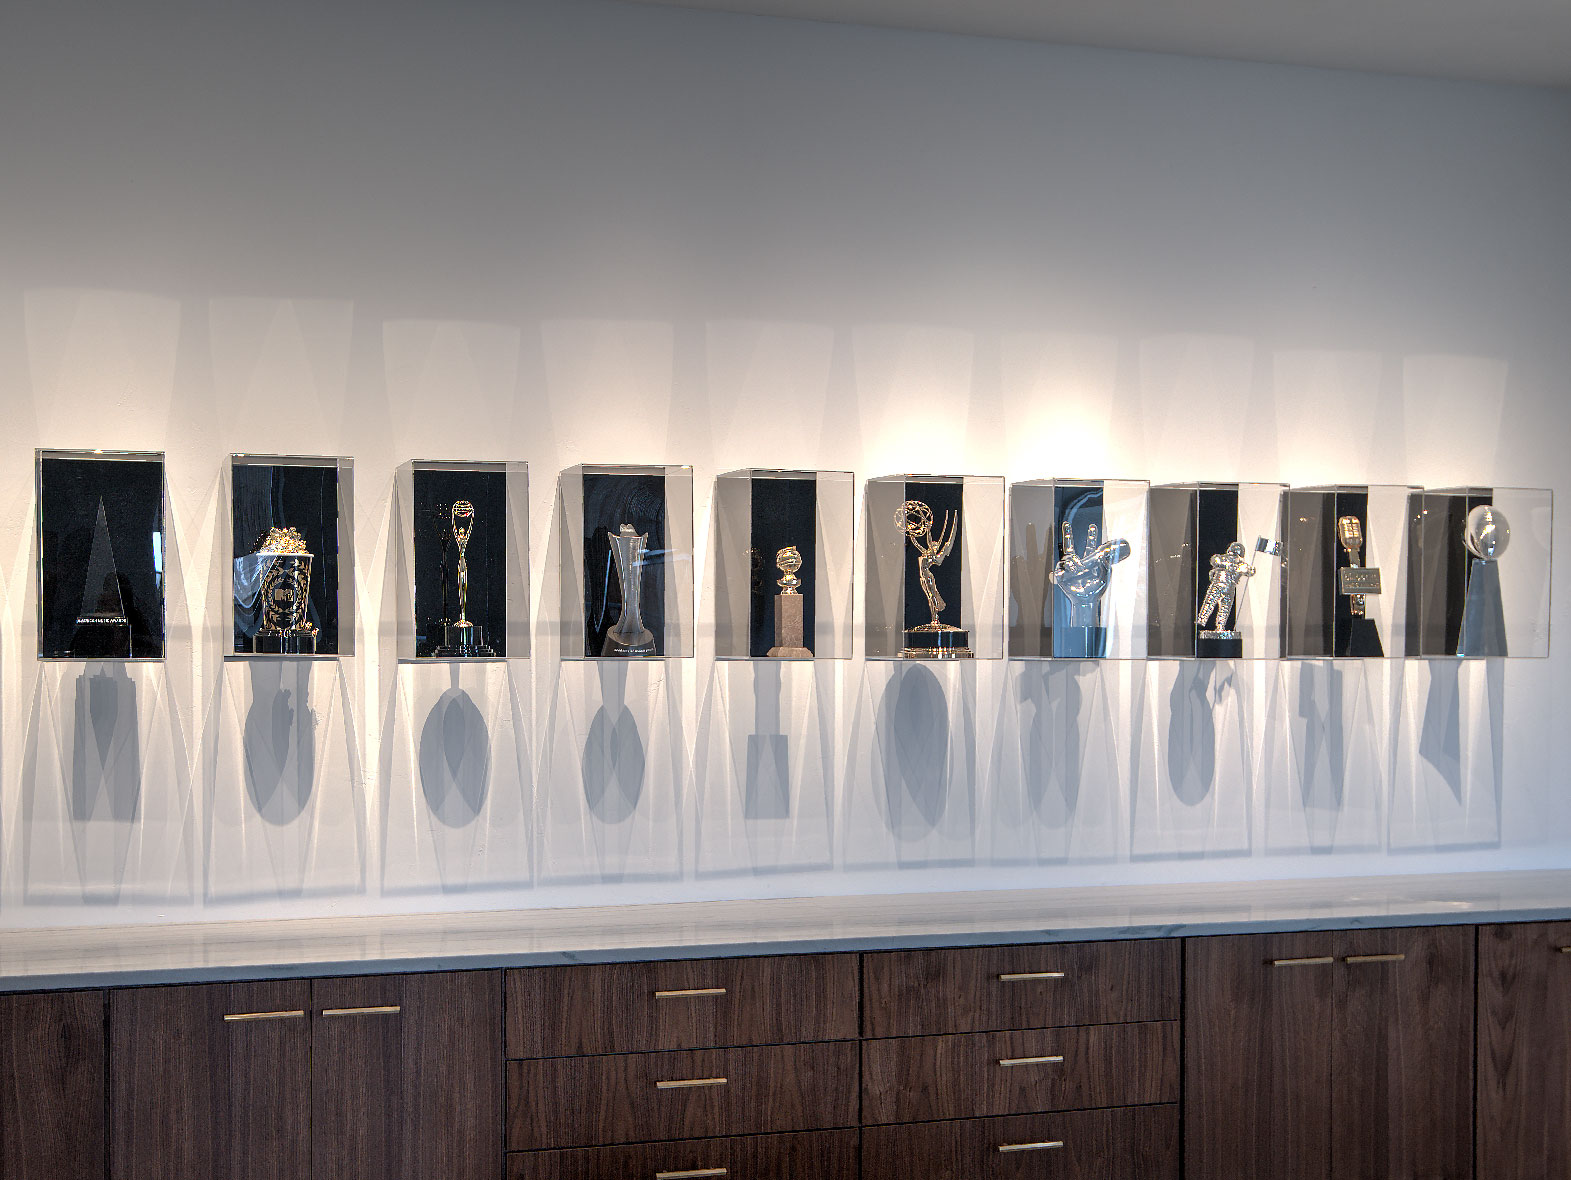 famous custom trophies by society awards in shadow boxes